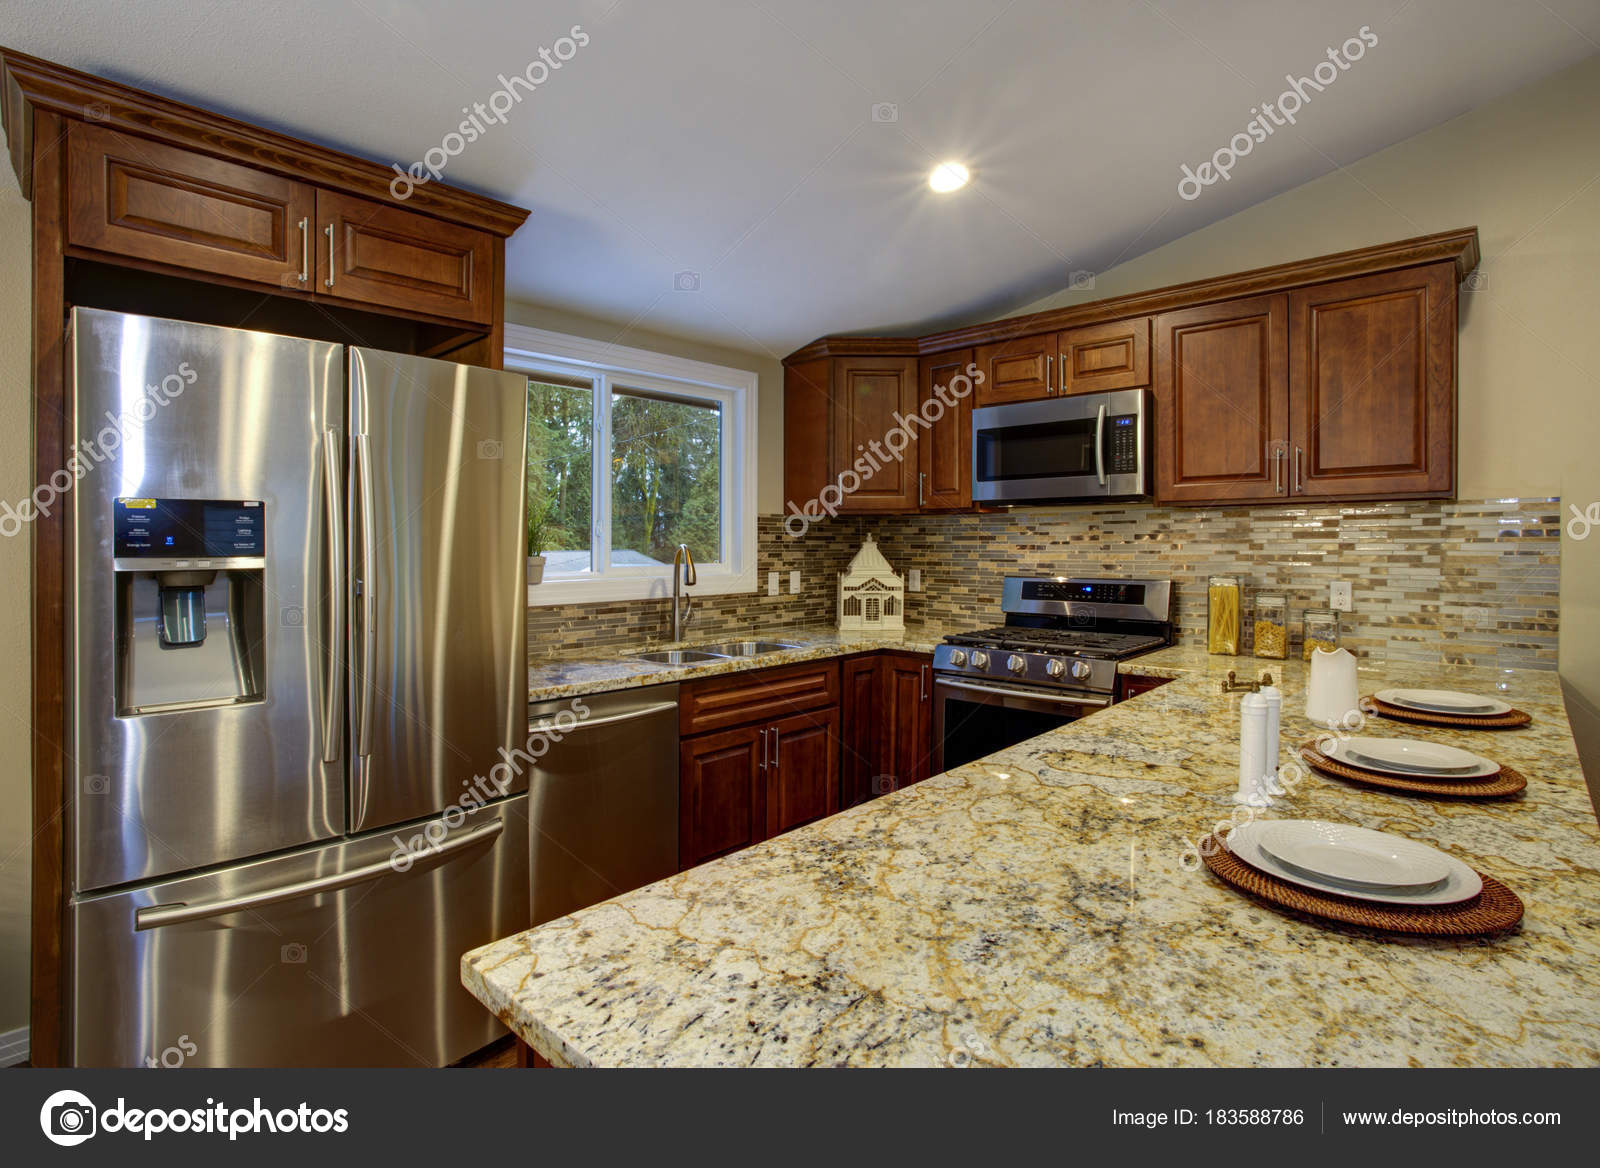 - Brown Kitchen Design With Mahogany Kitchen Cabinets. — Stock Photo